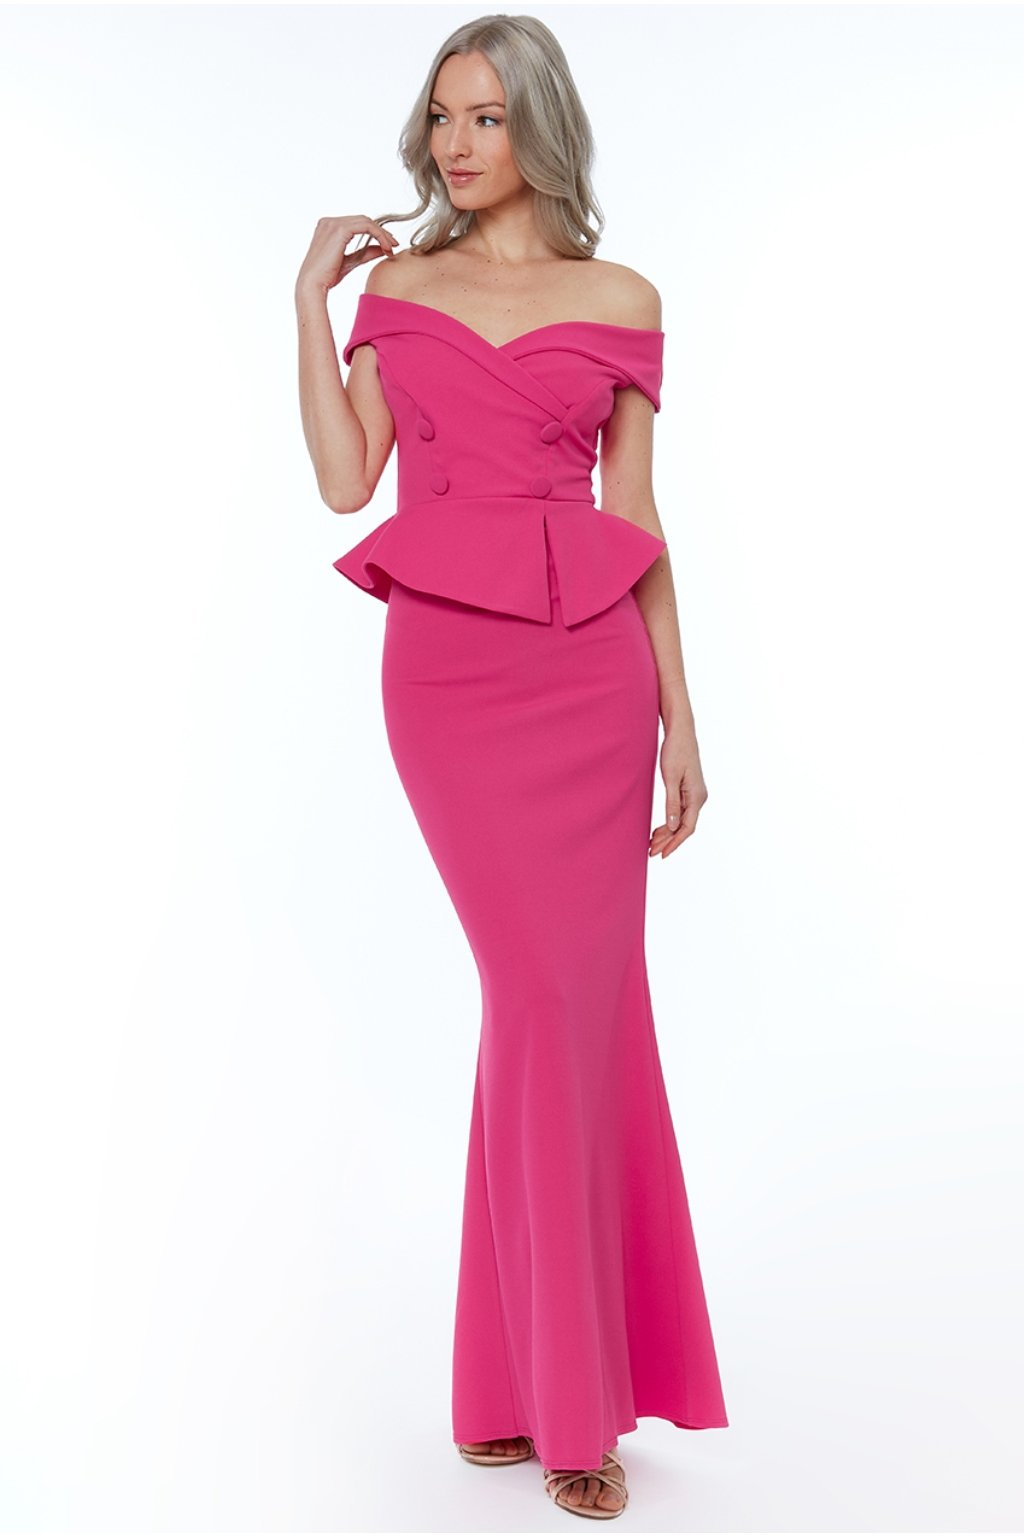 Cyclamen ruffle peplum formal dress